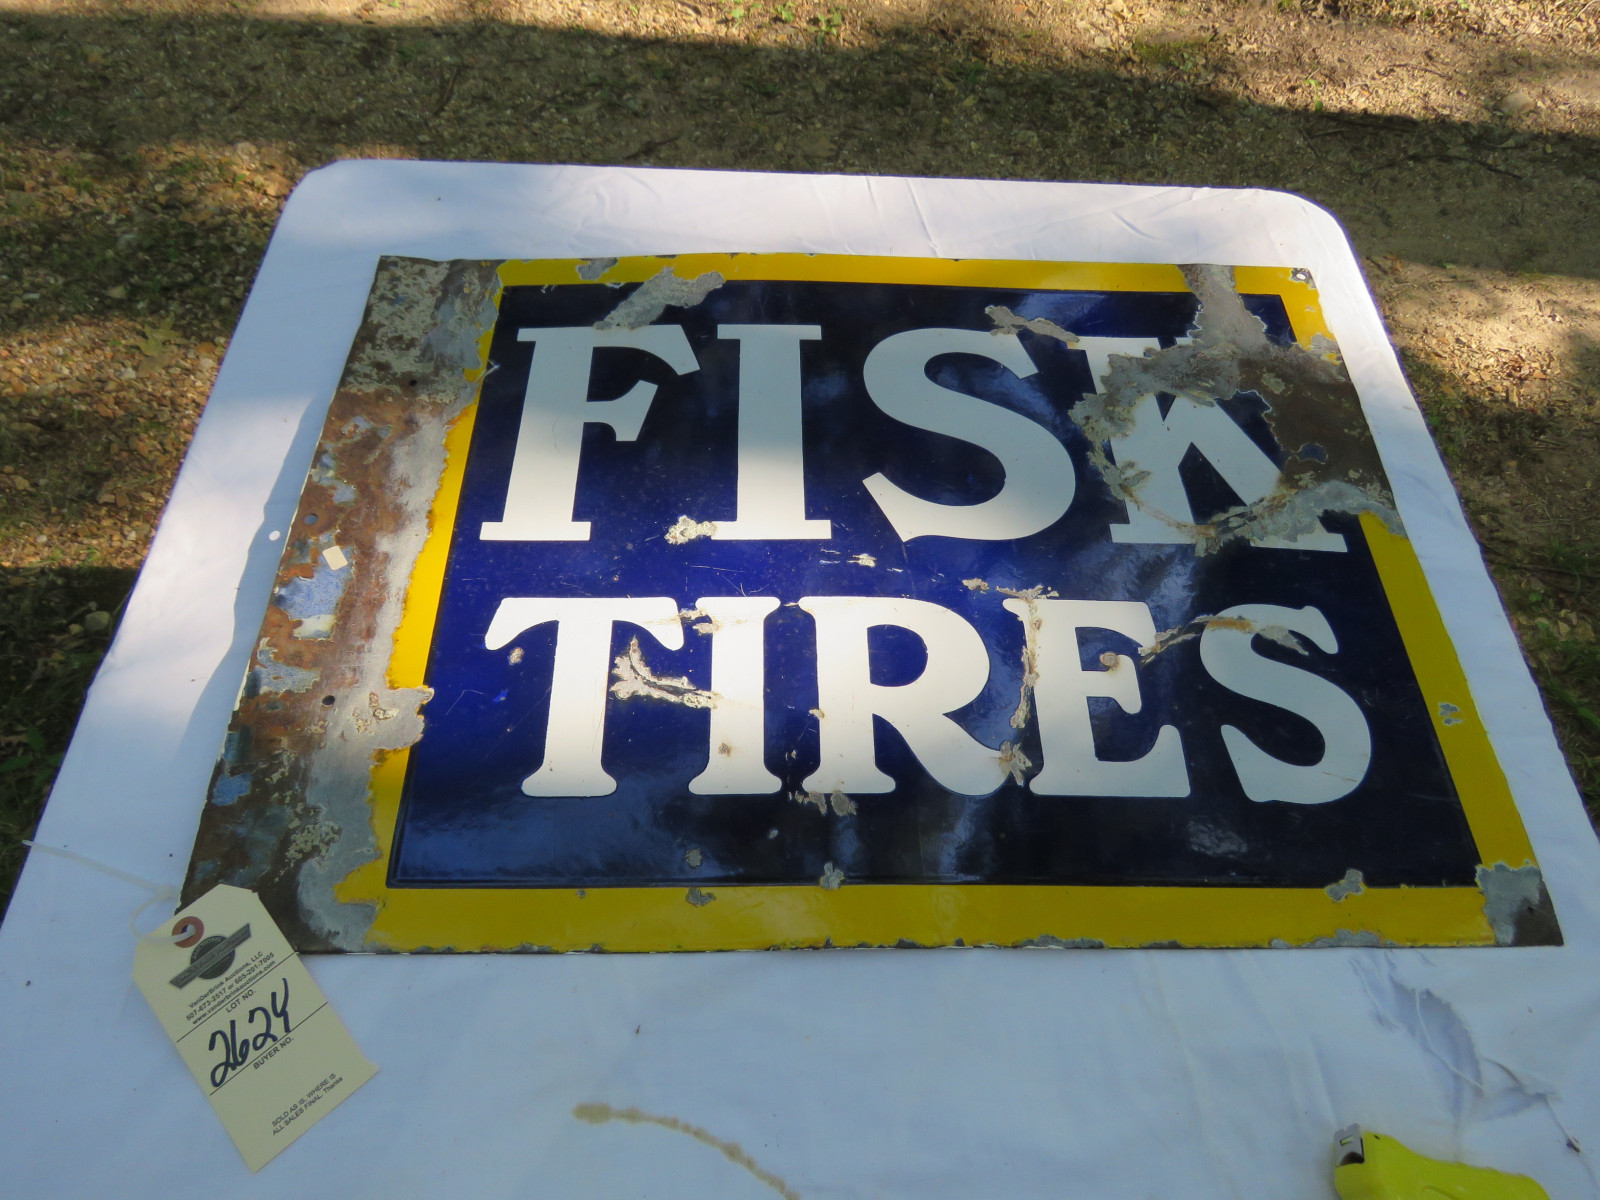 Fisk Tires DS Porcelain Sign 20X28 inches - Image 1